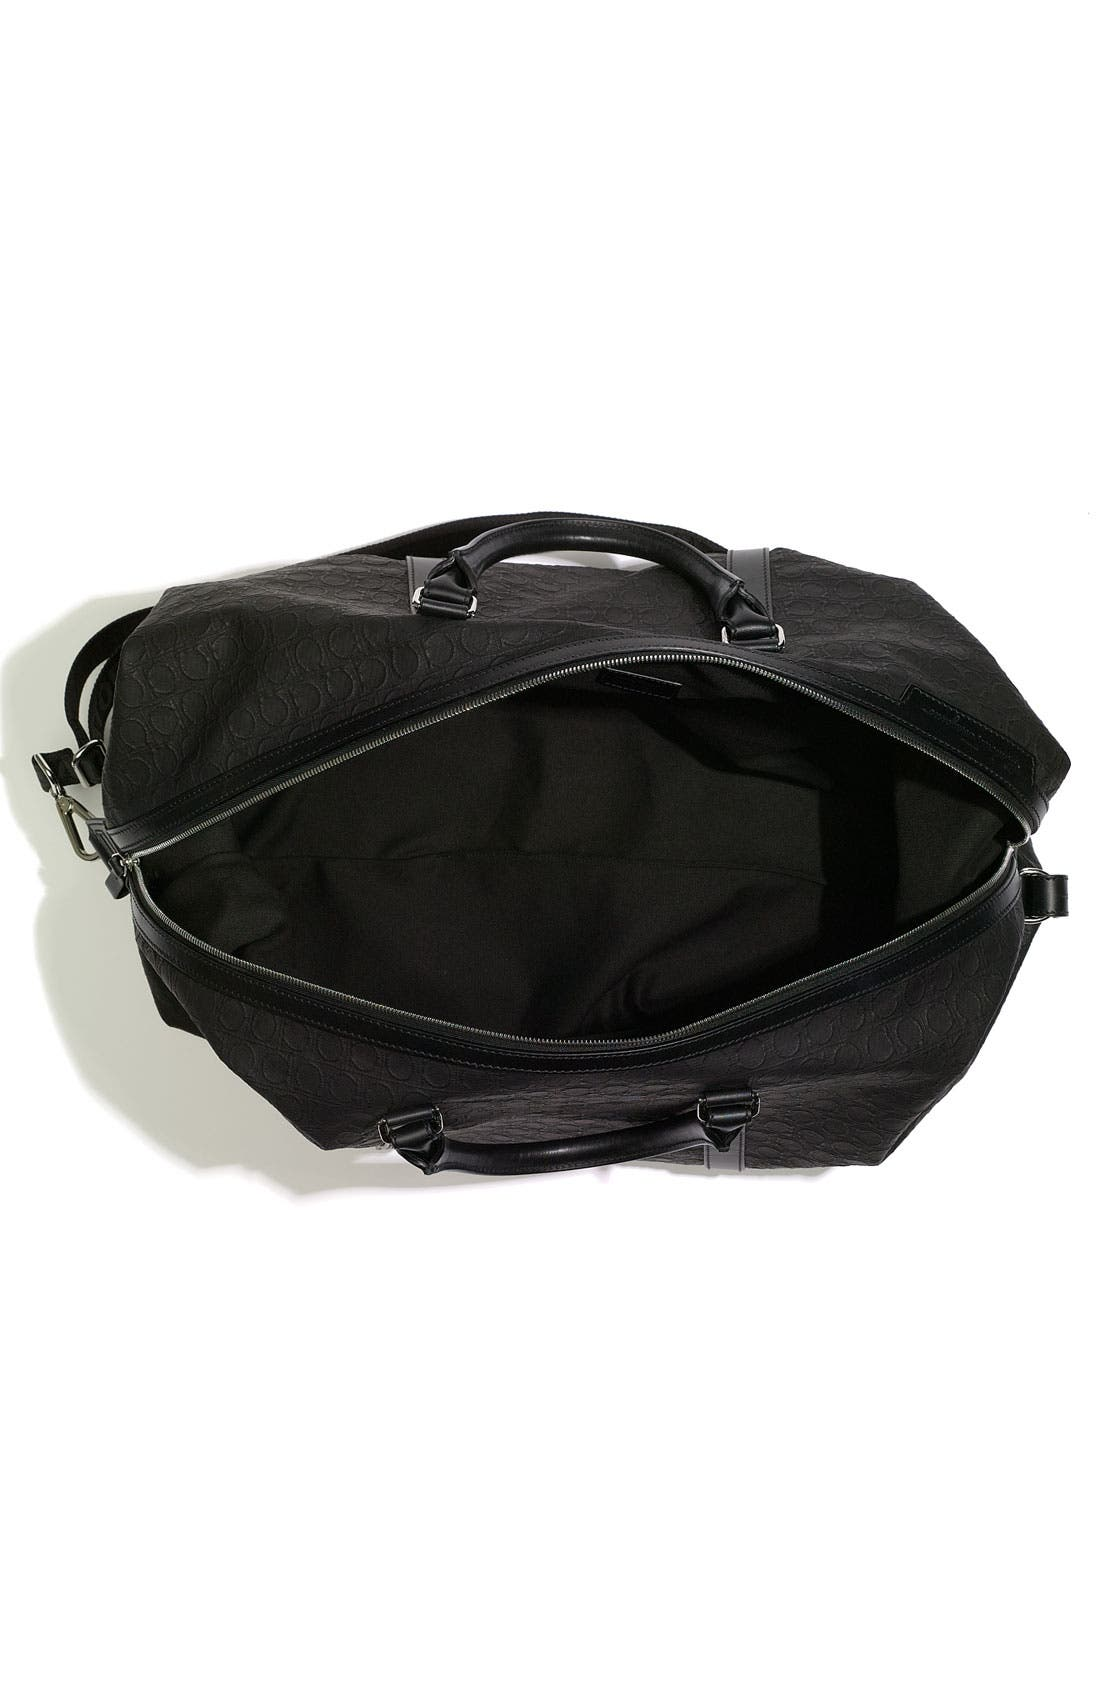 Alternate Image 3  - Salvatore Ferragamo 'Miami Borsone Morbido' Duffel